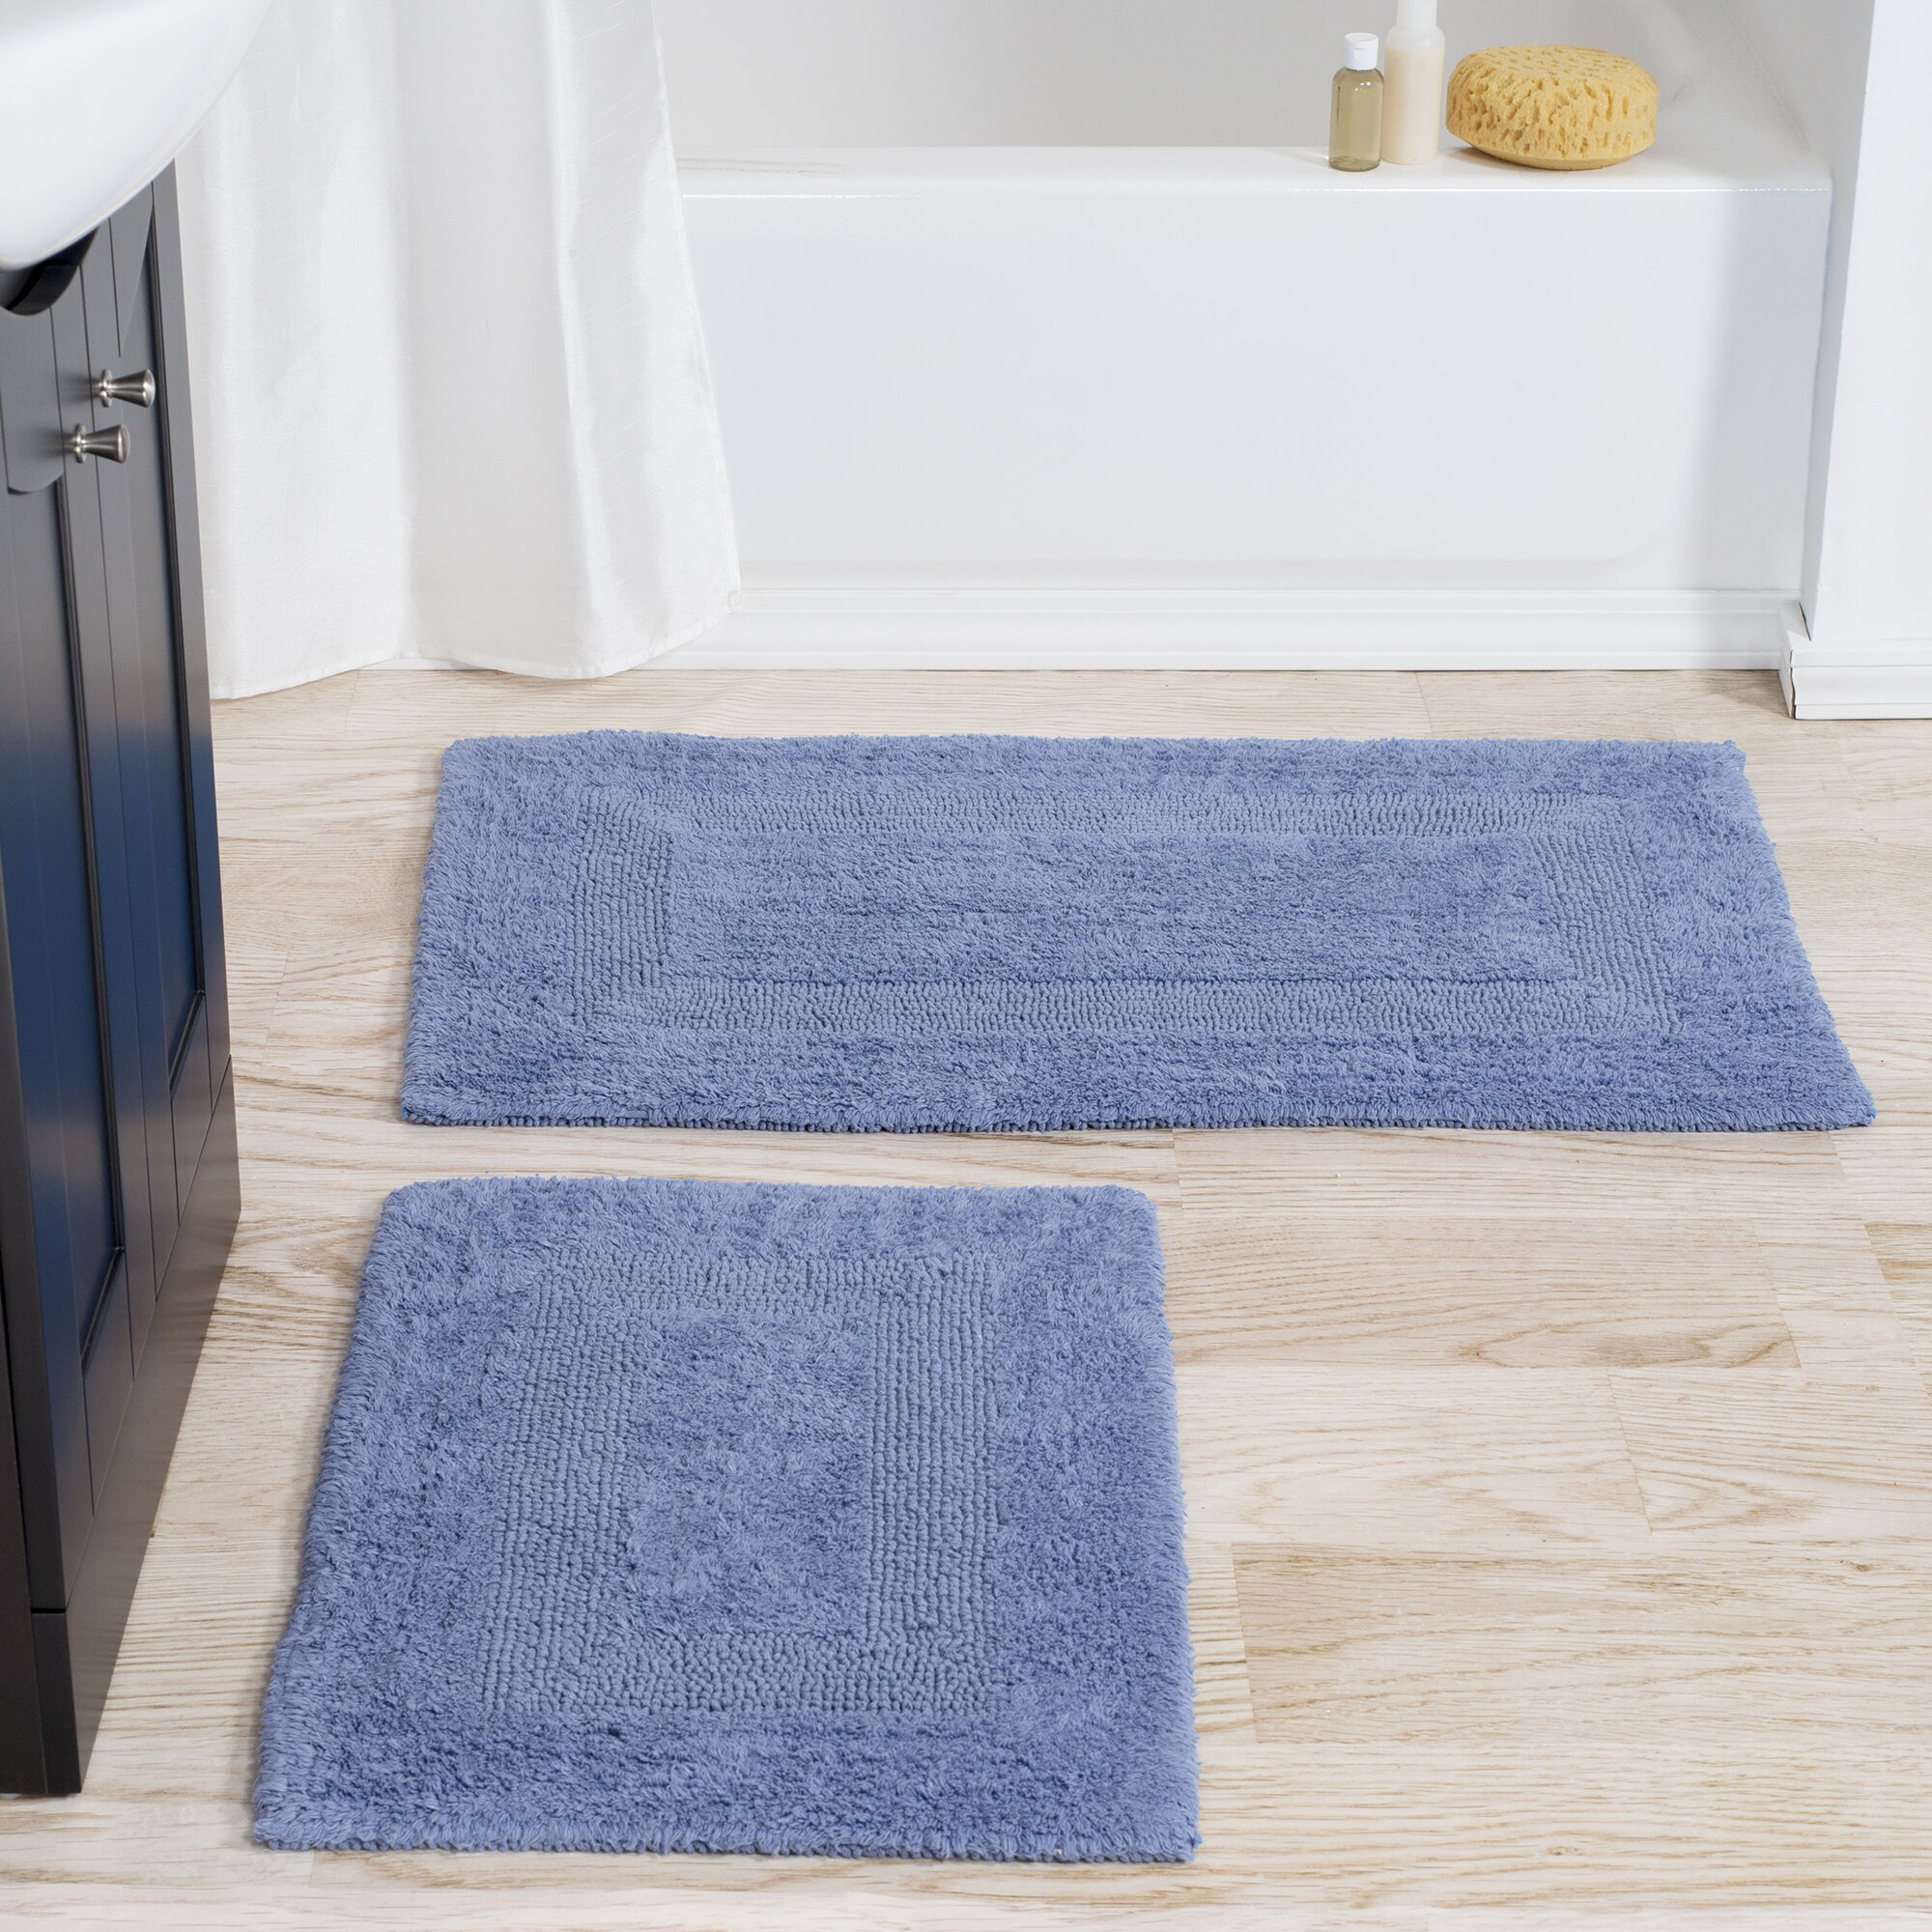 Lavish Home 2 Piece Reversible Bath Rug Set Reviews